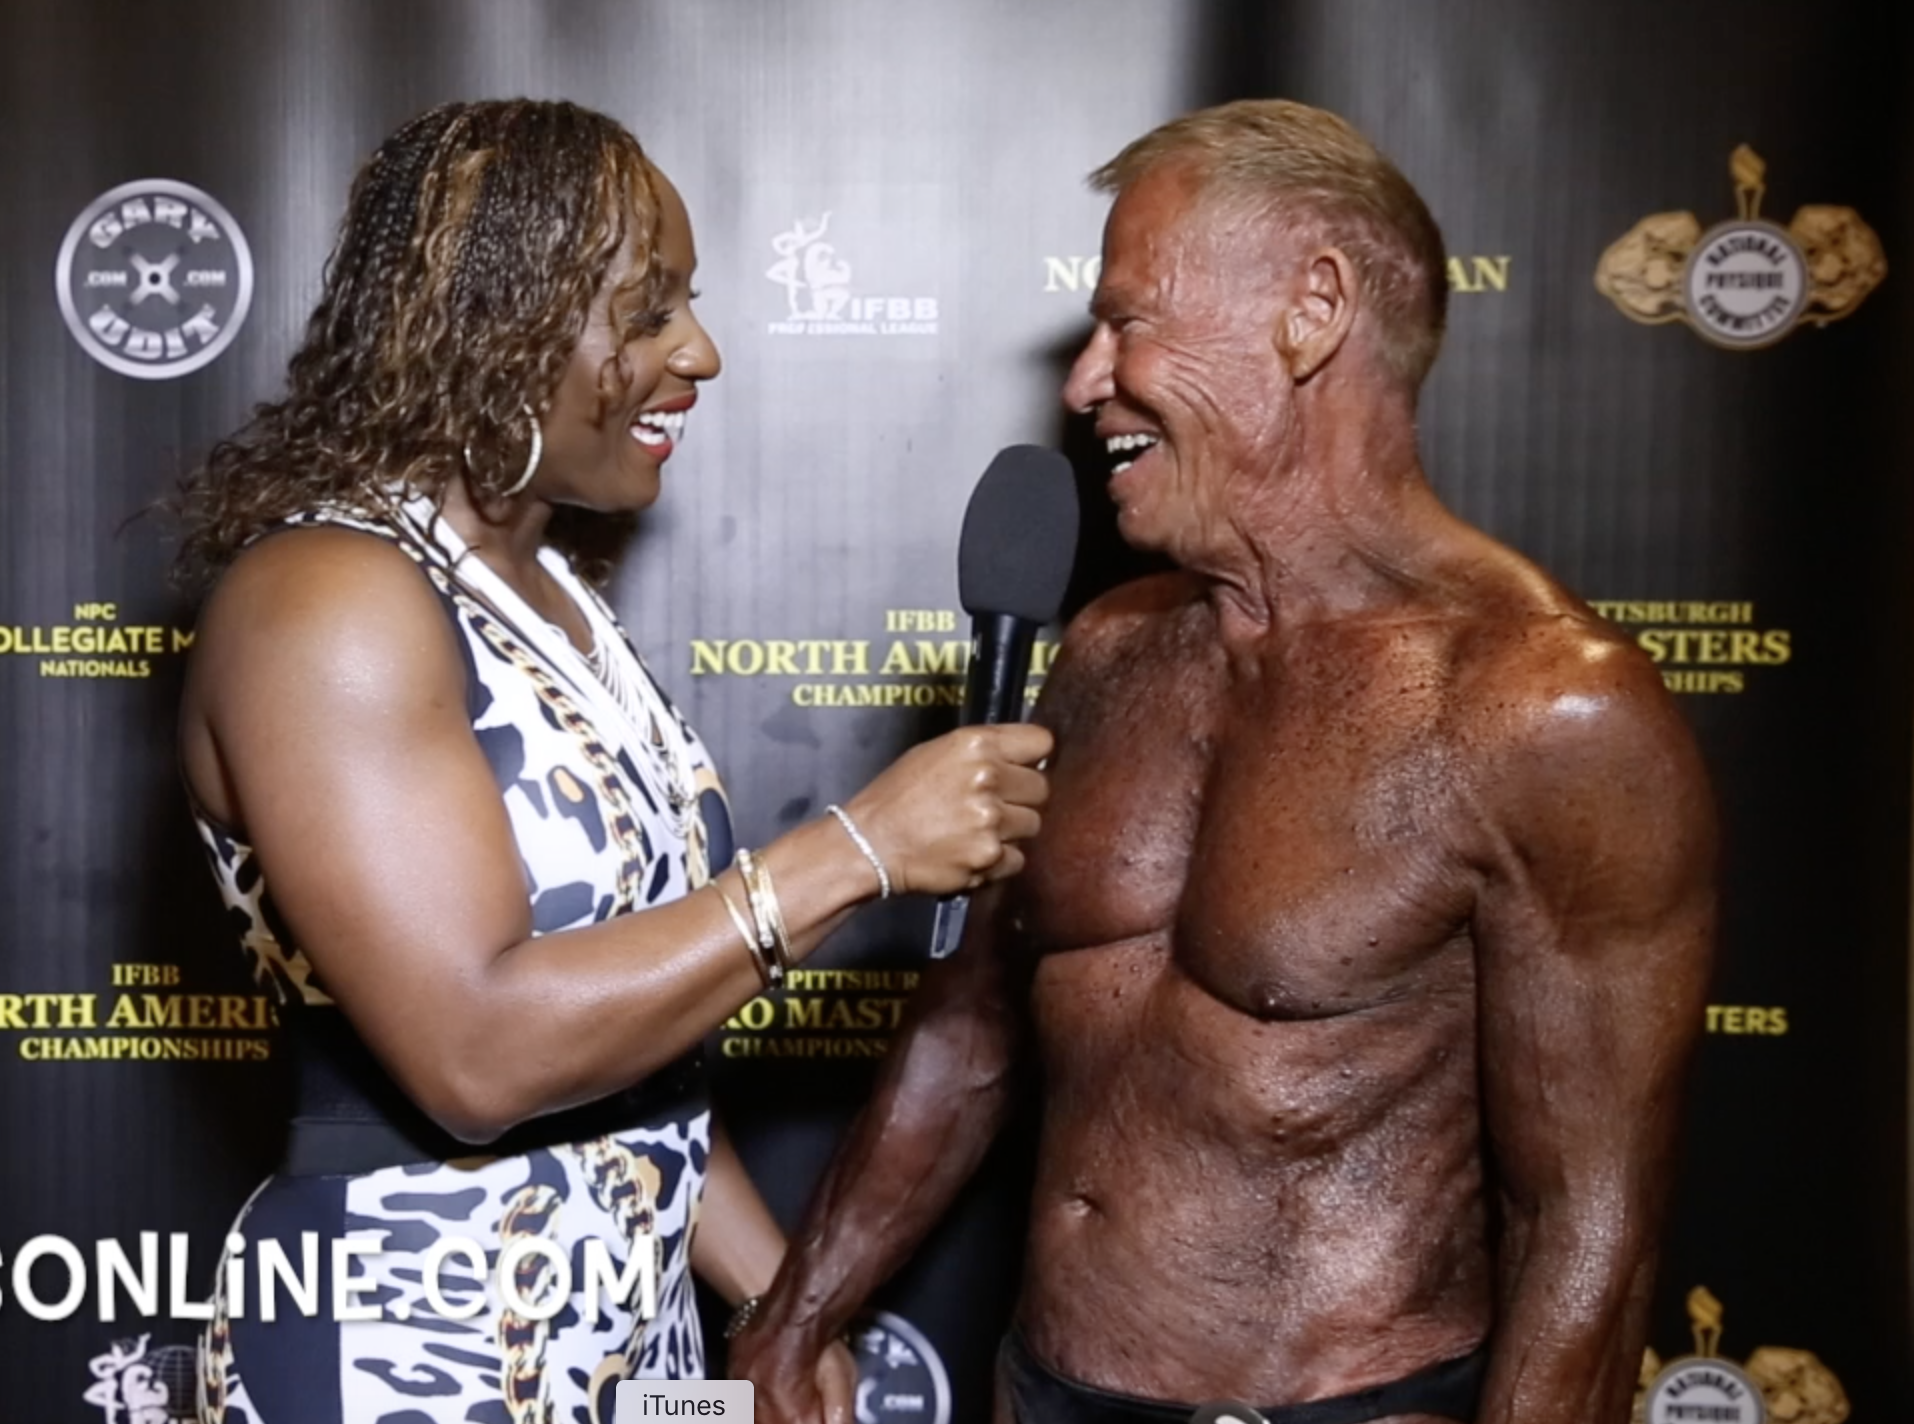 2017 IFBB PITTSBURGH PRO MASTERS BODYBUILDING WINNER INTERVIEWS: OVER 40,50,60,70 & 80!